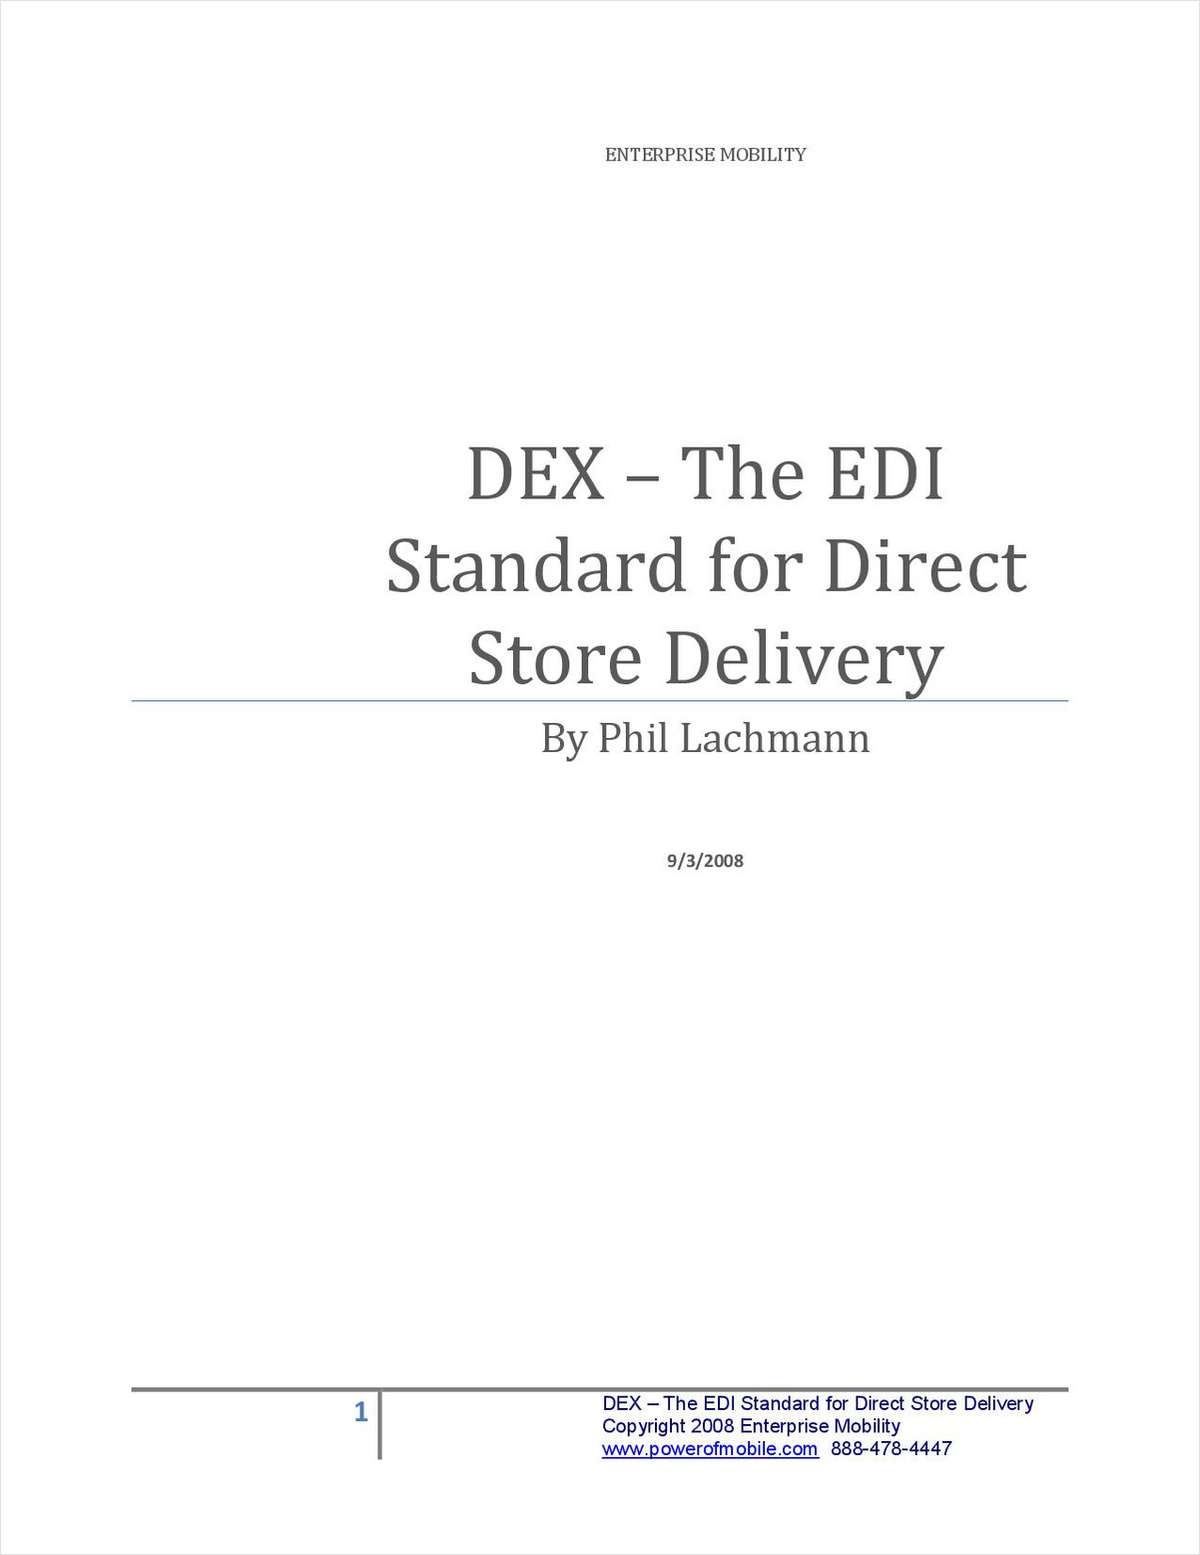 DEX – The EDI Standard for Direct Store Delivery